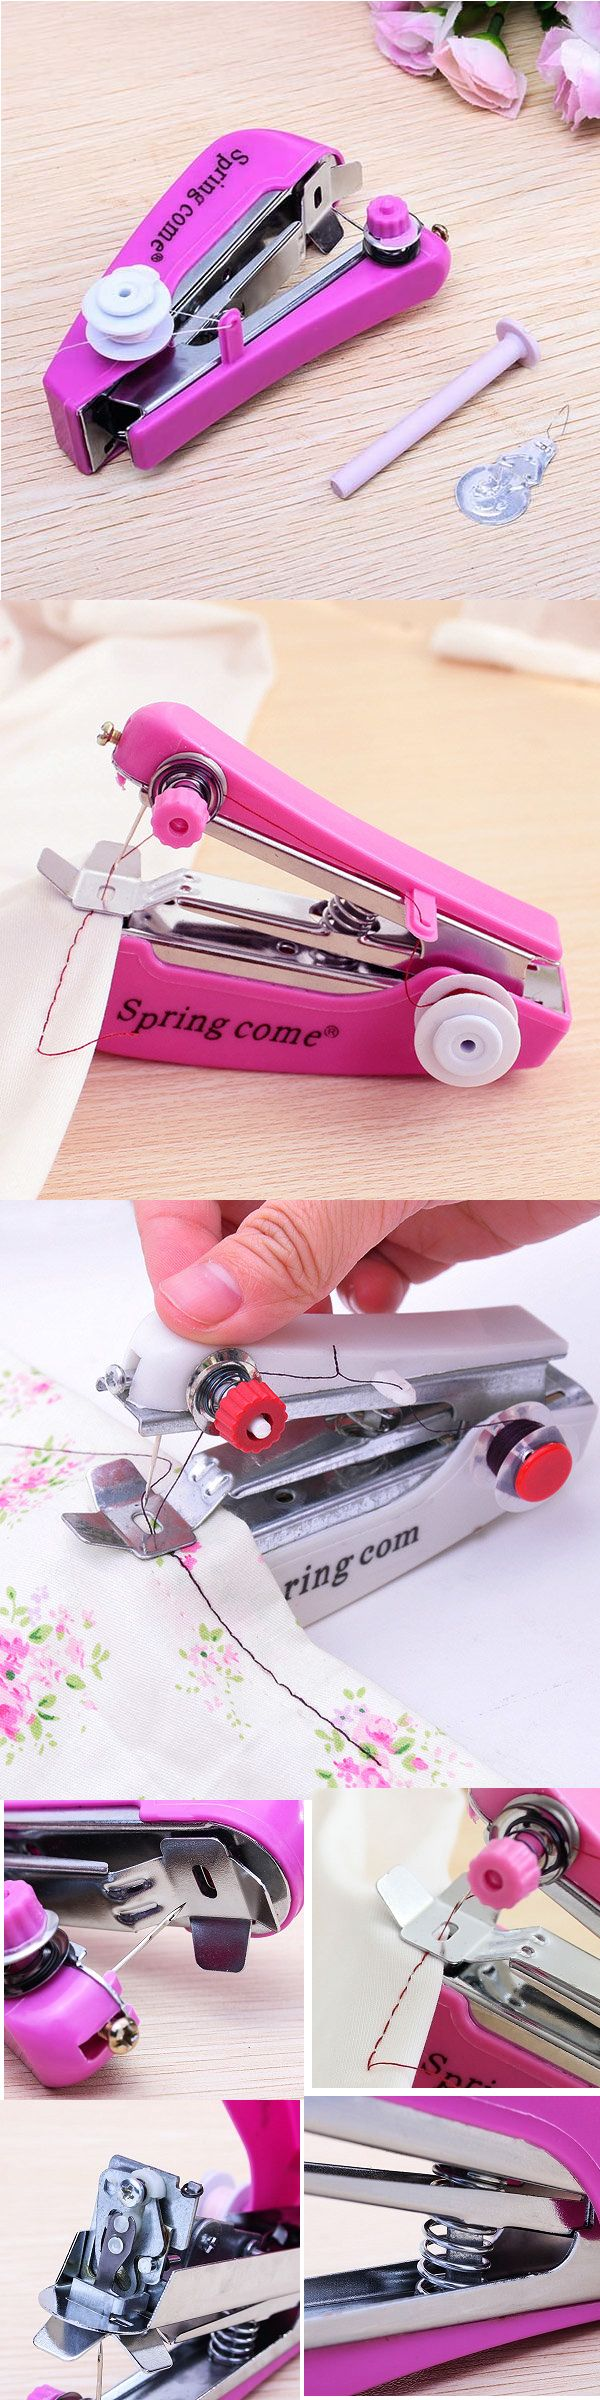 US$4.07 Portable Mini Manual Clothes Sewing Machine Handcraft DIY